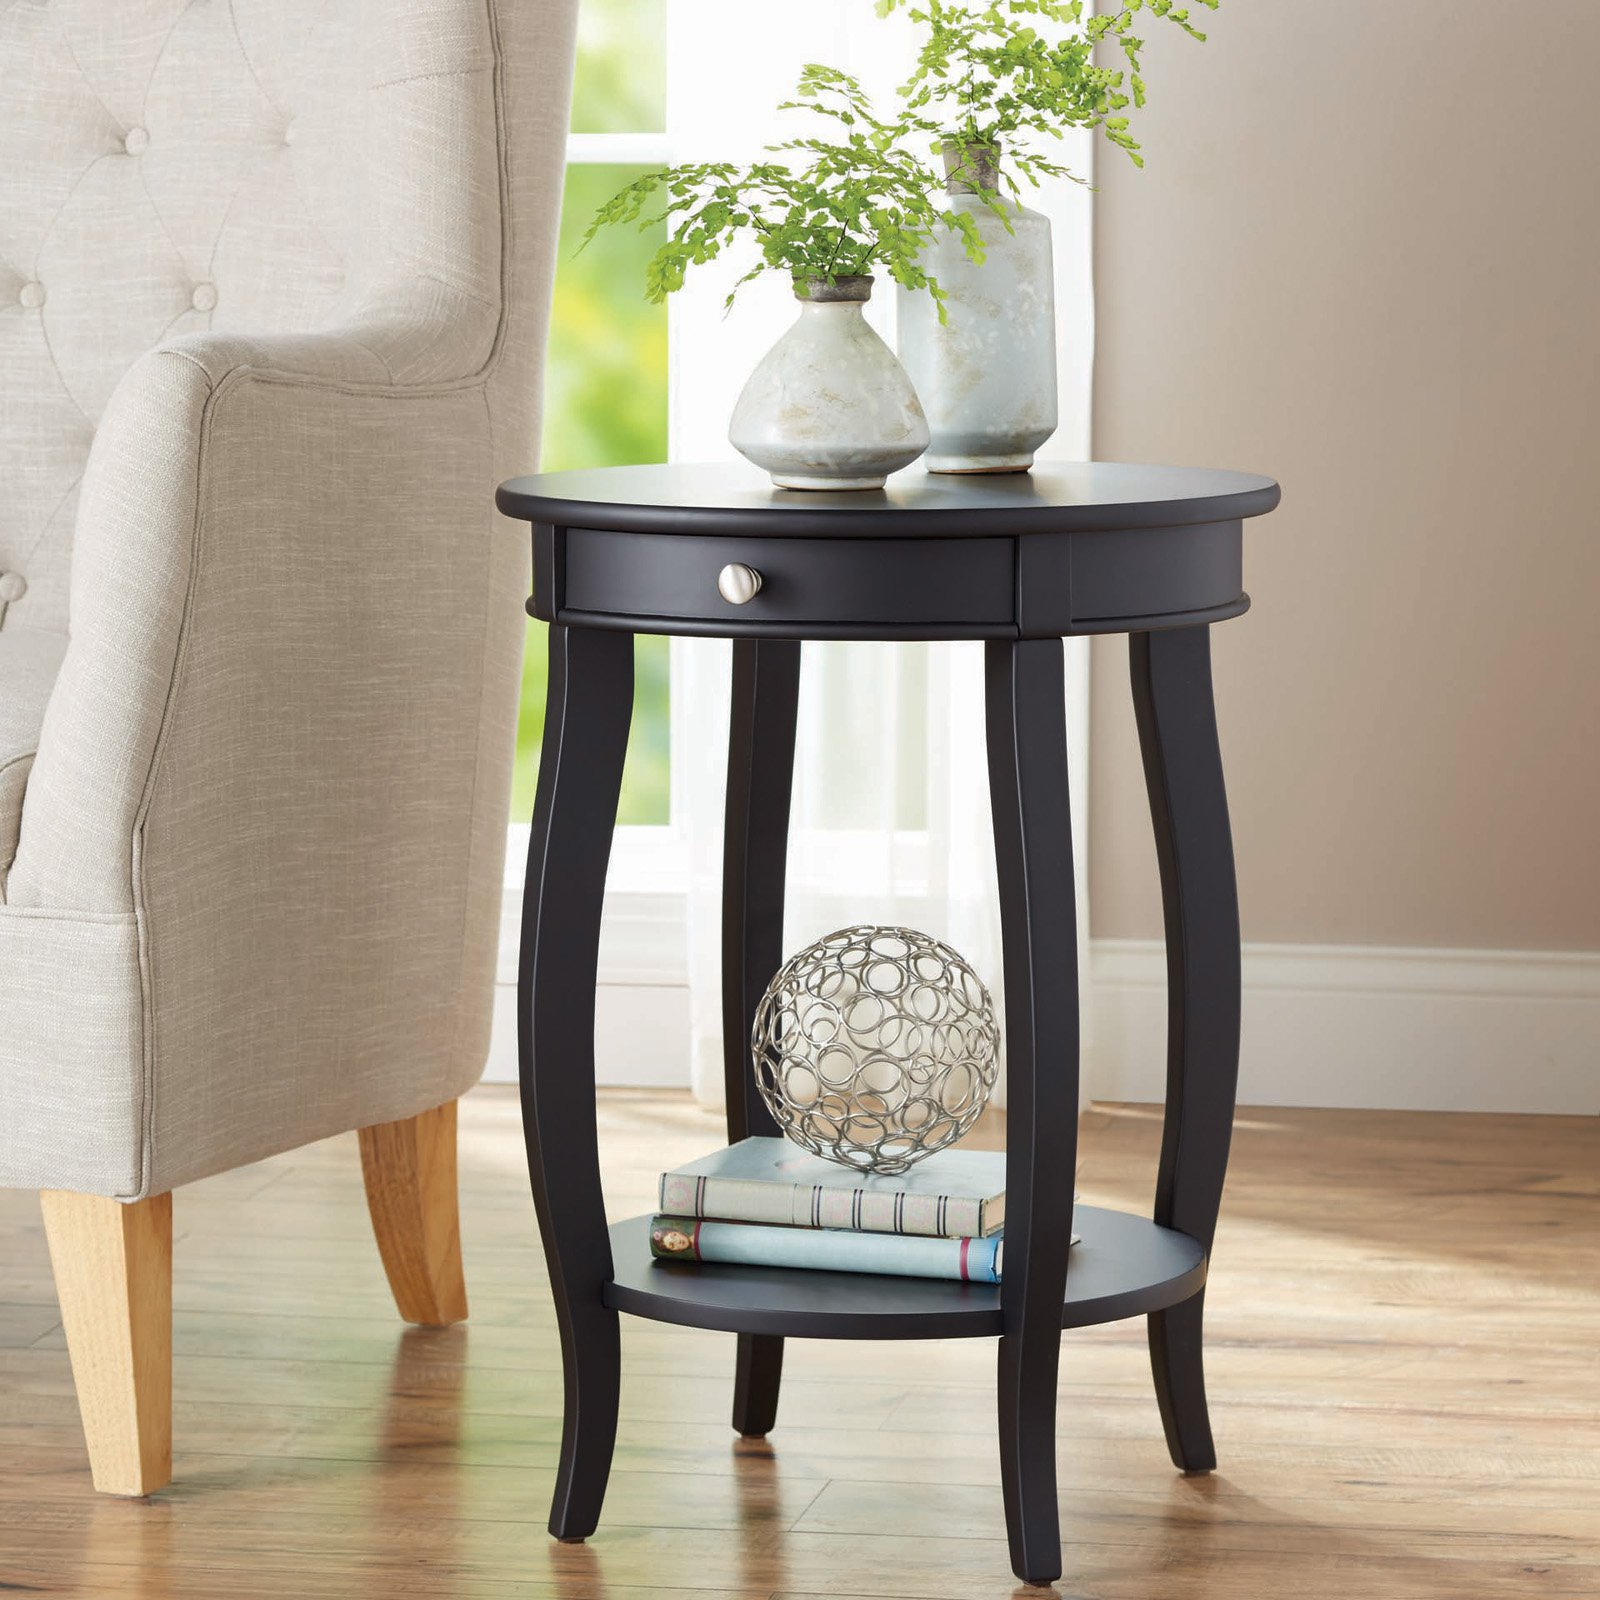 better homes gardens round accent table with drawer multiple metal and wood colors coffee tables marble granite legs for antique oval side monarch specialties set outdoor storage